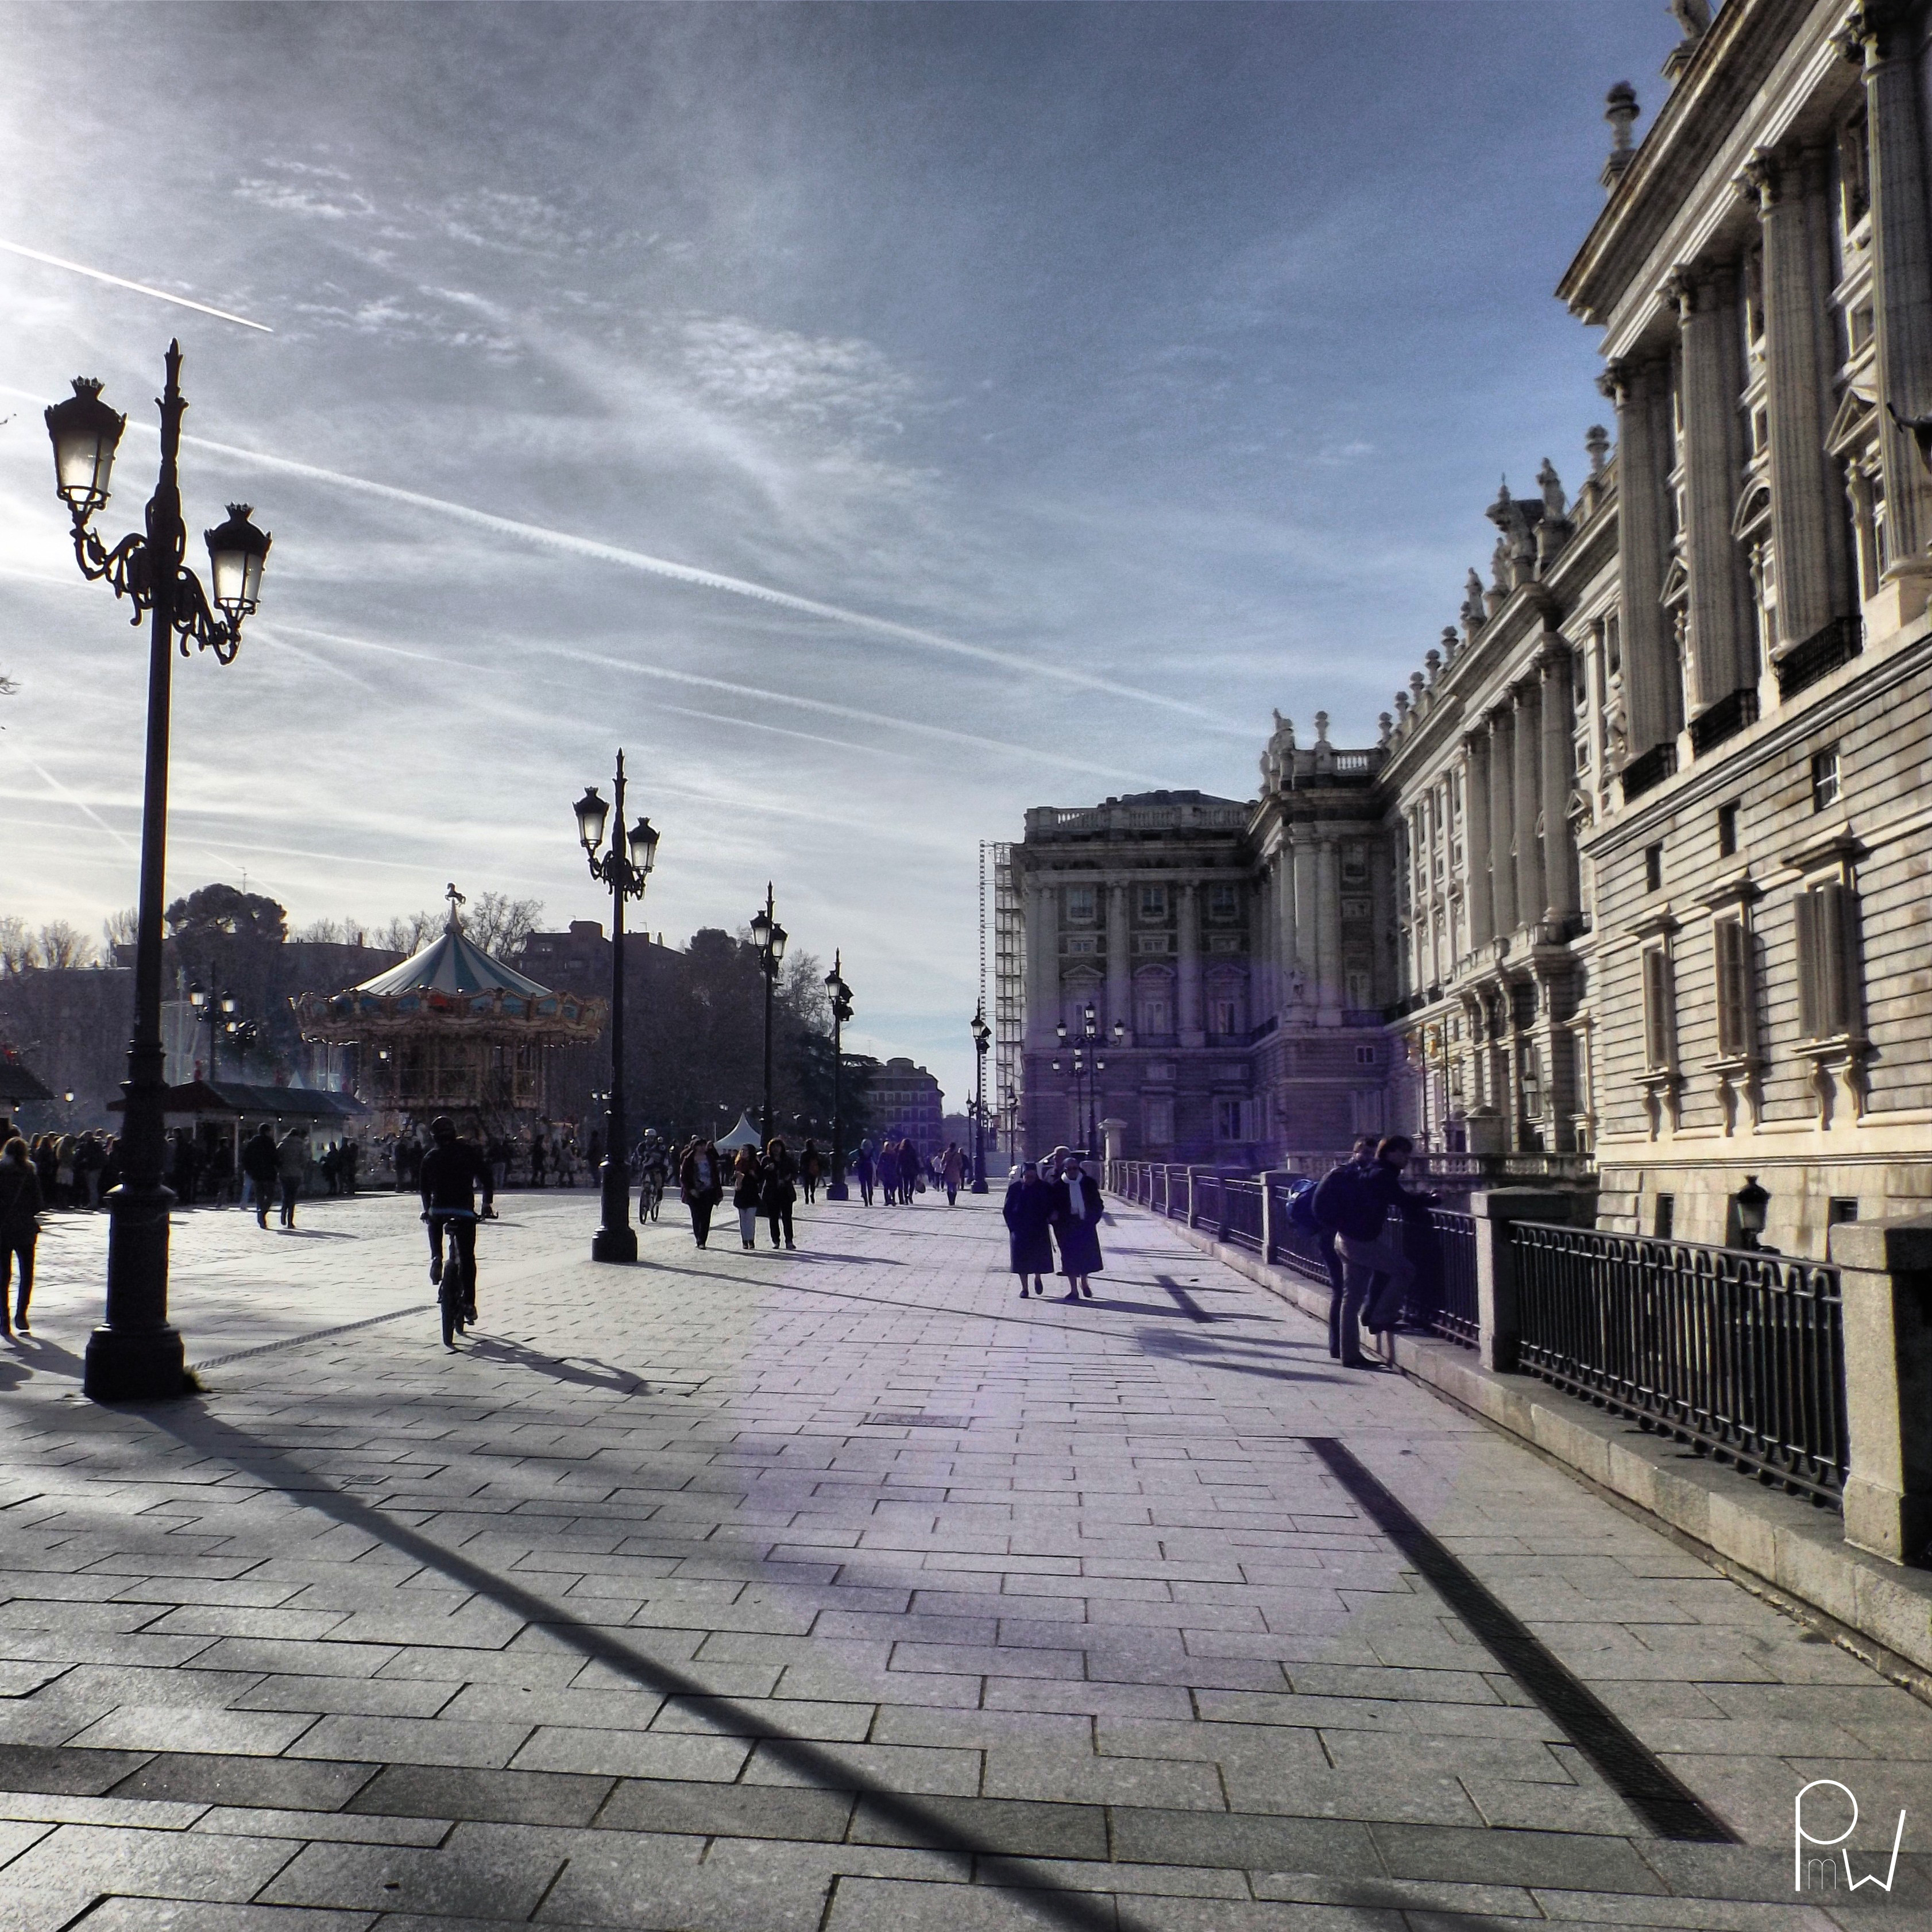 Oriente square and Royal Palace